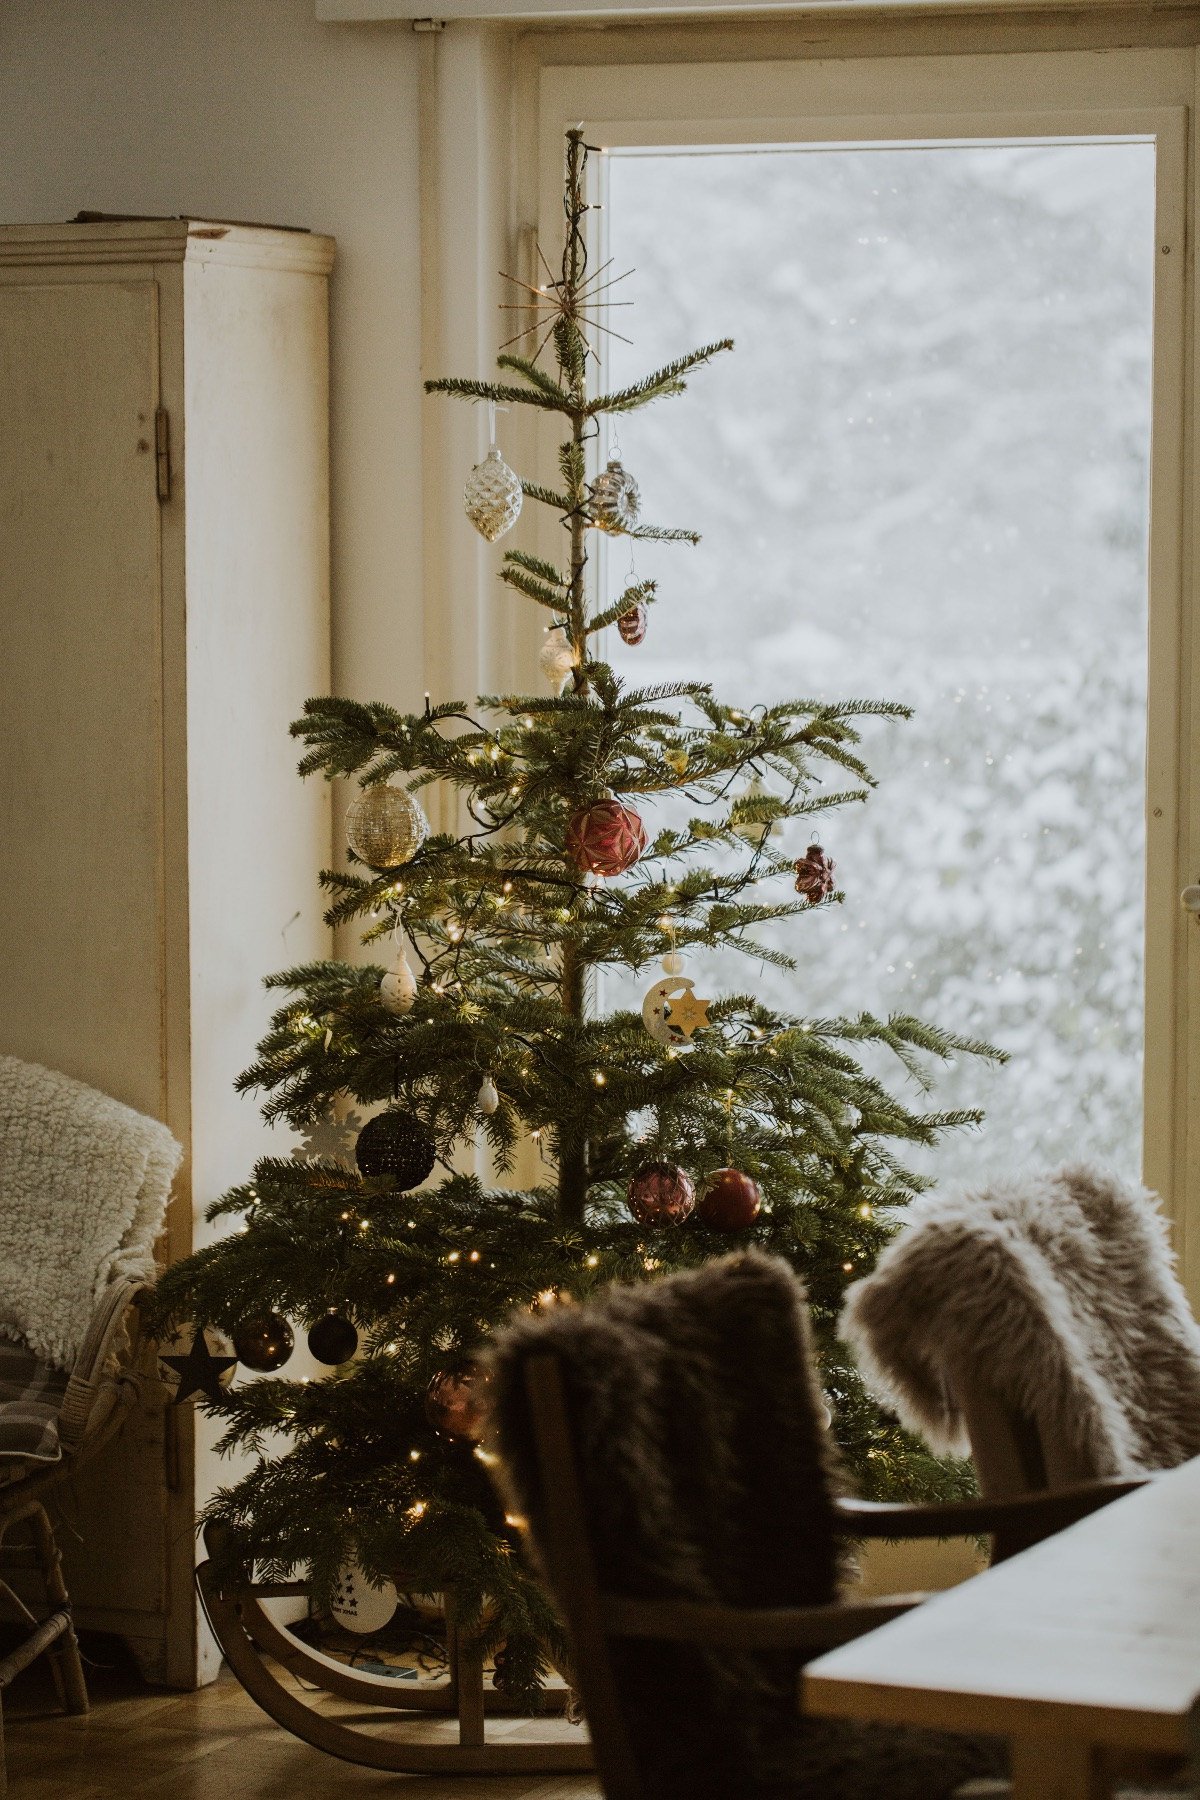 5 Ways to Make Your Home Smell Good for the Holidays | Herbal Academy | Make your home smell good this holiday season without having a negative impact on your health. Here are 5 safe and natural ideas to get you started!